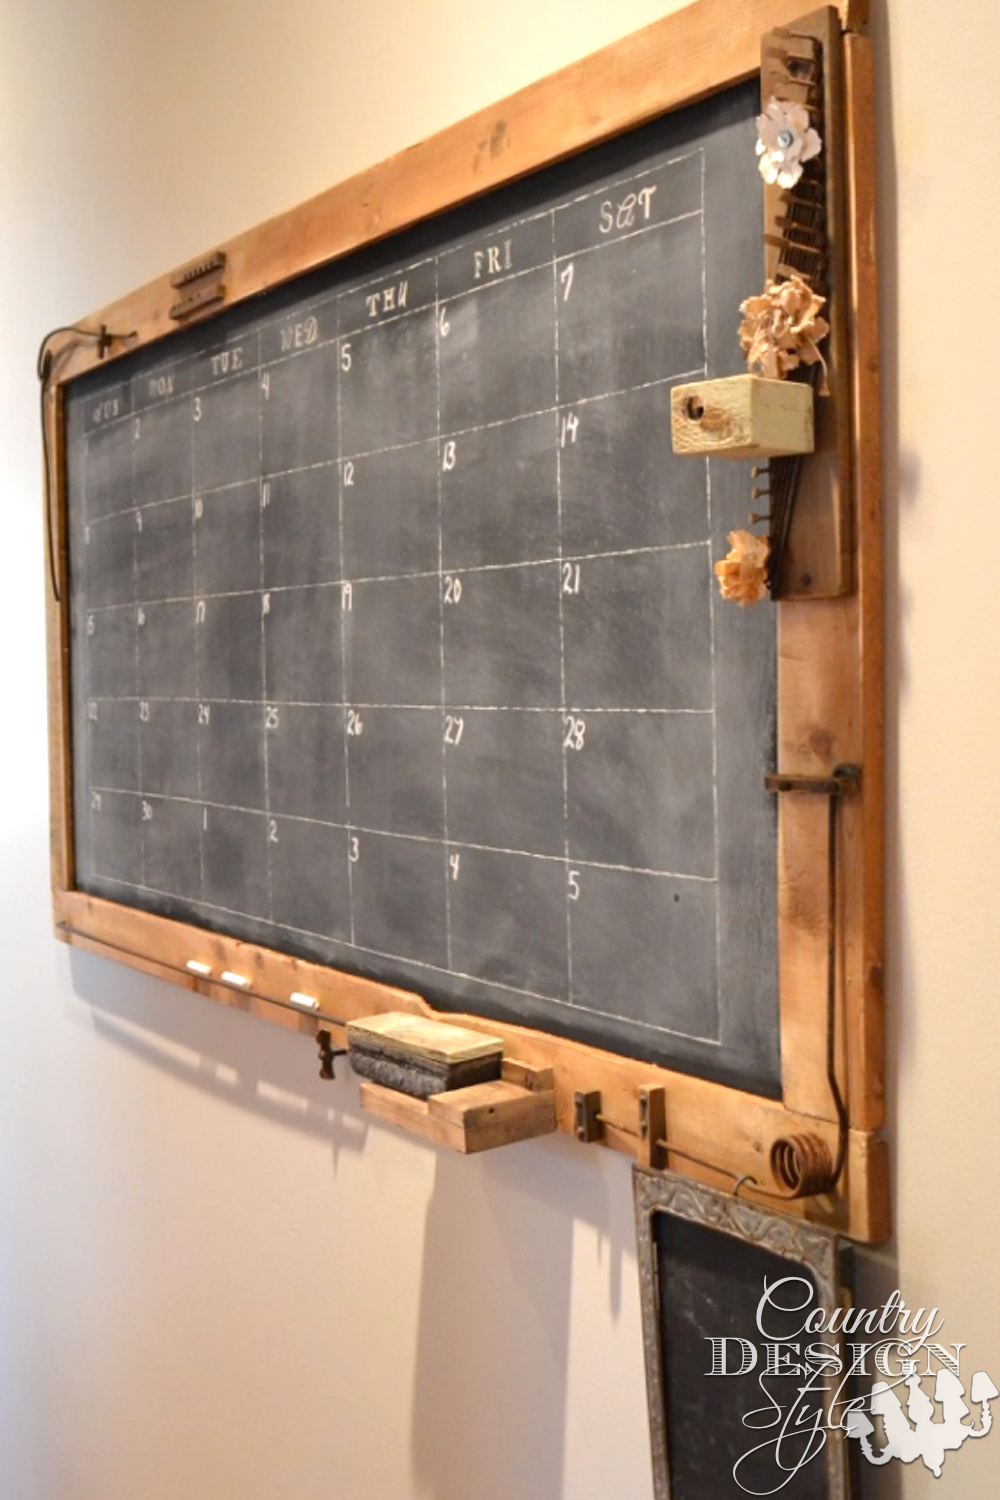 How to make a large chalkboard for under $25. Free plan download. Simple woodworking steps. Less than 1 hour to make the chalkboard. Free plans download. | countrydesignstyle.com